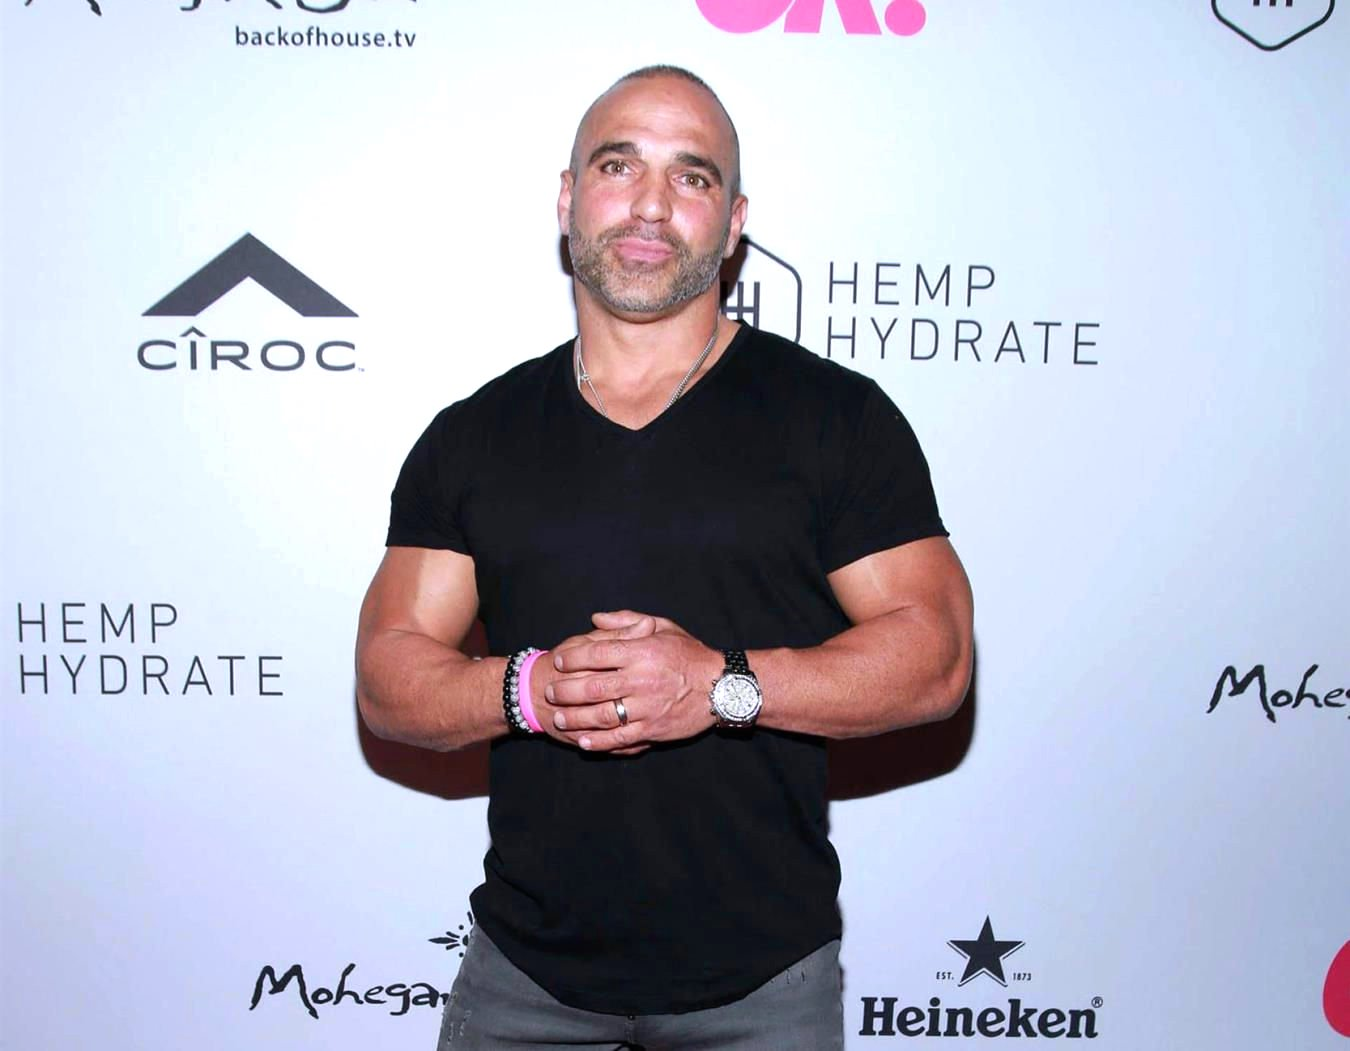 RHONJ Star Joe Gorga Responds After He's Caught Sharing Phony 'Before' and 'After' Photos of Supposed House Flip, Plus New Allegations Surface